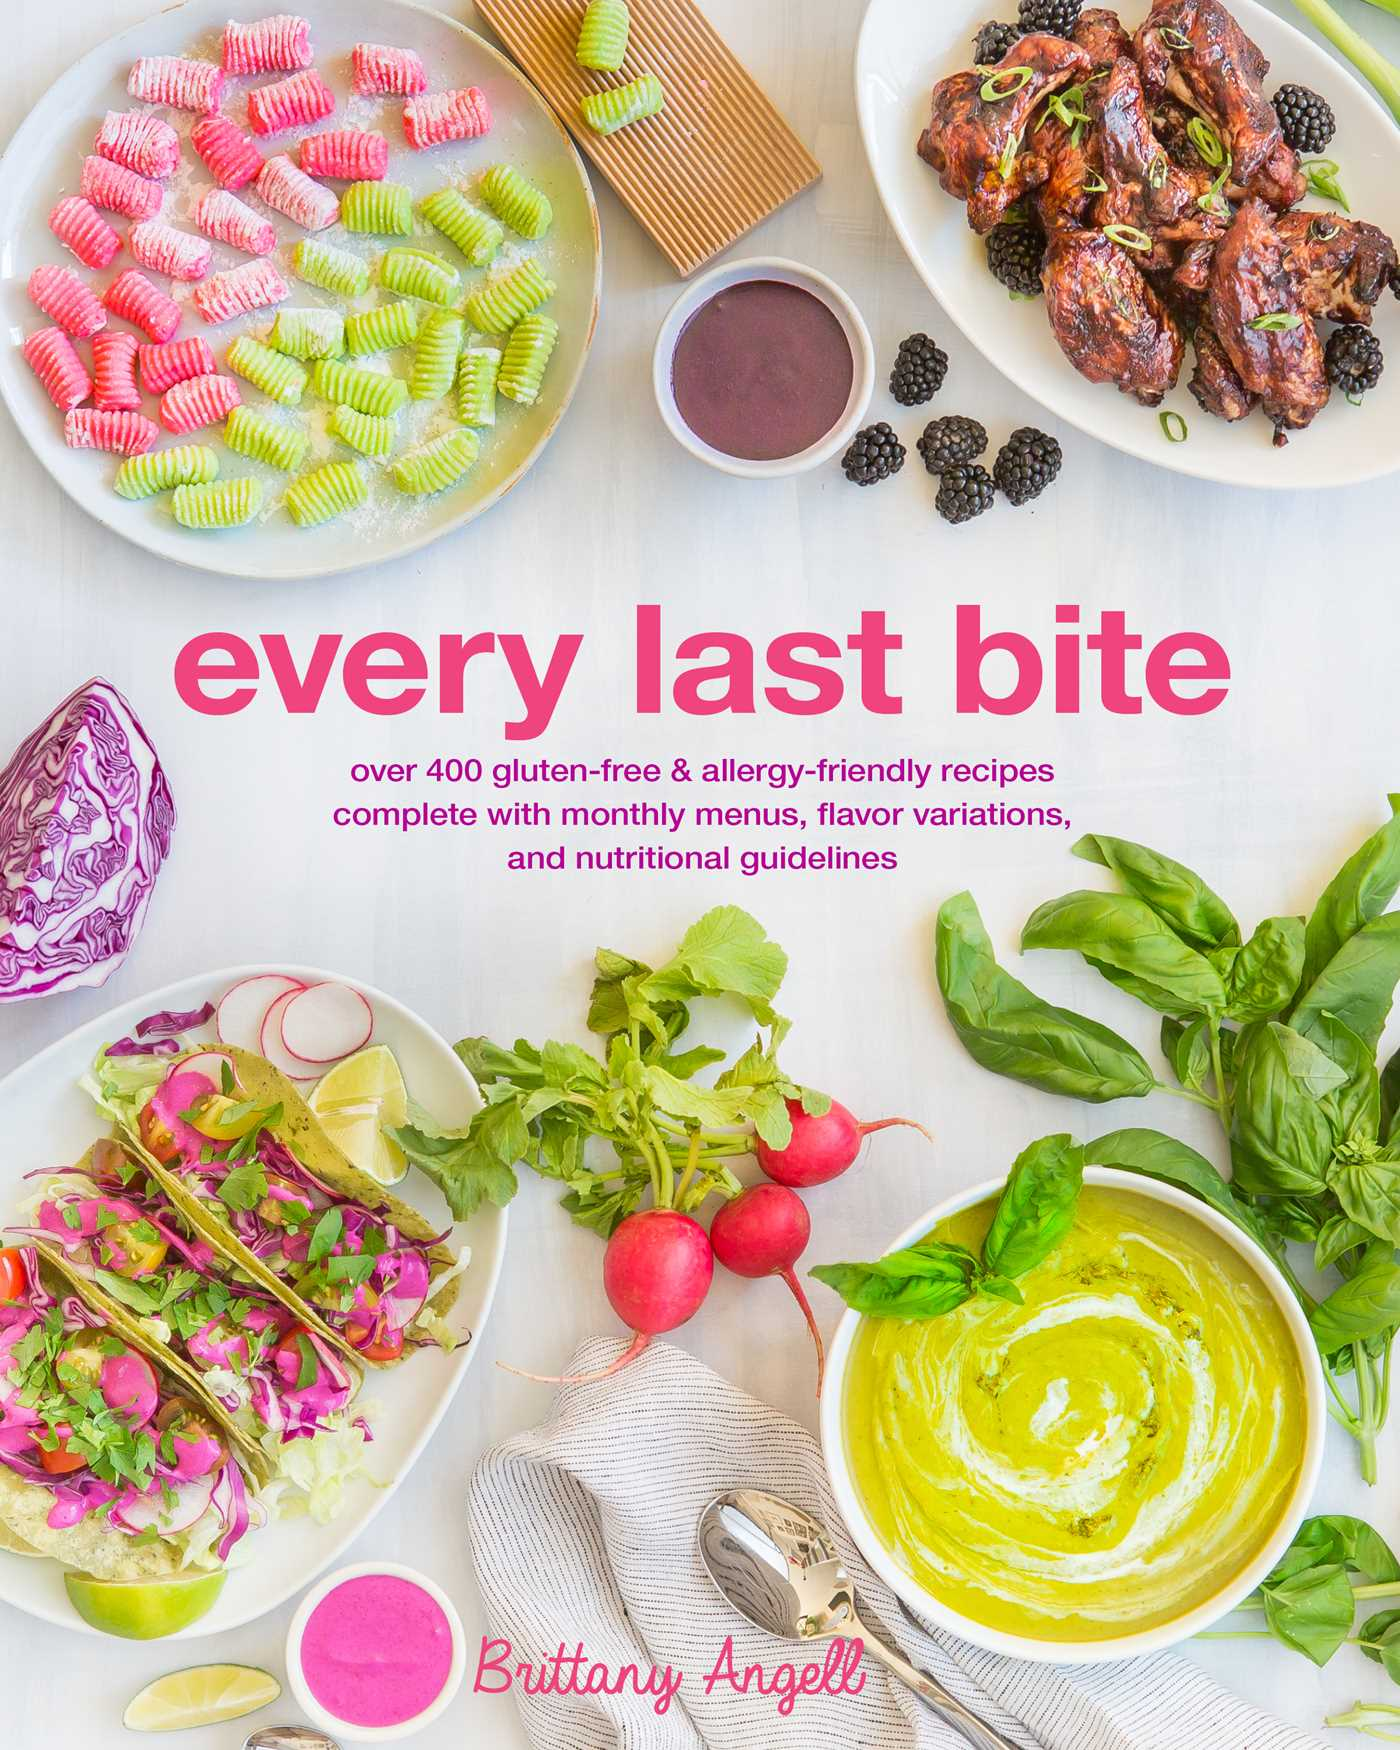 Every last bite 9781628601022 hr